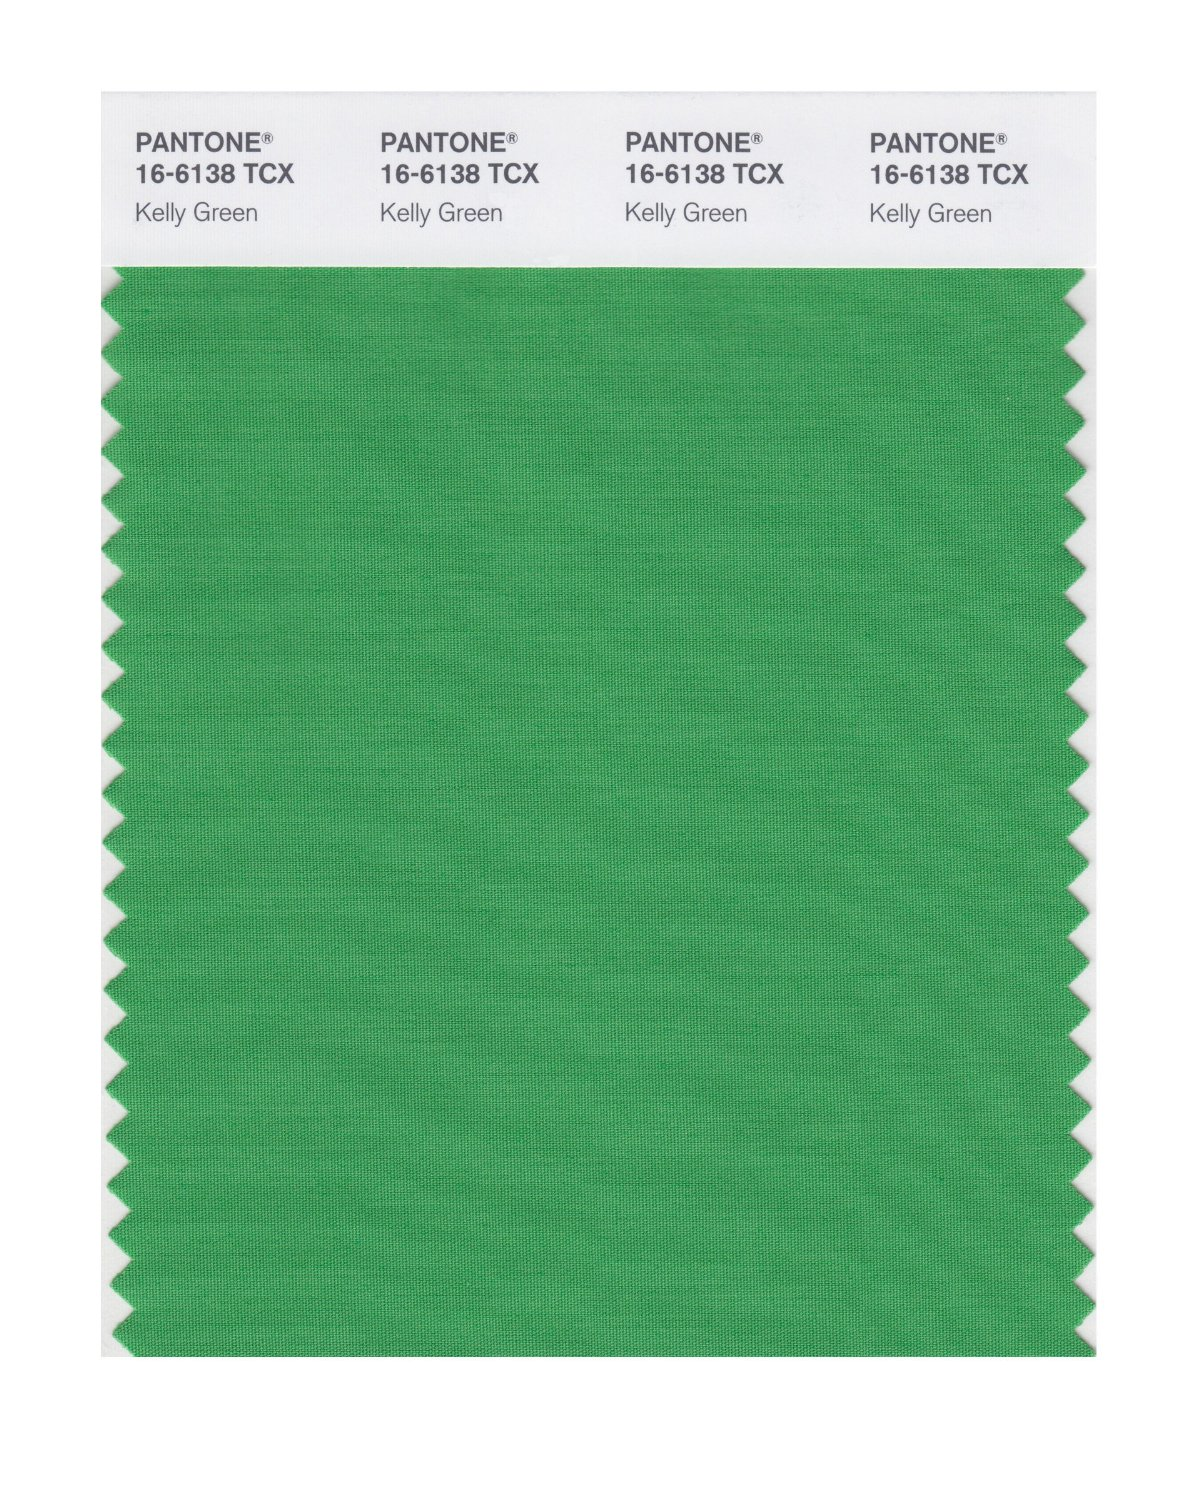 Pantone Smart Swatch 16-6138 Kelly Green